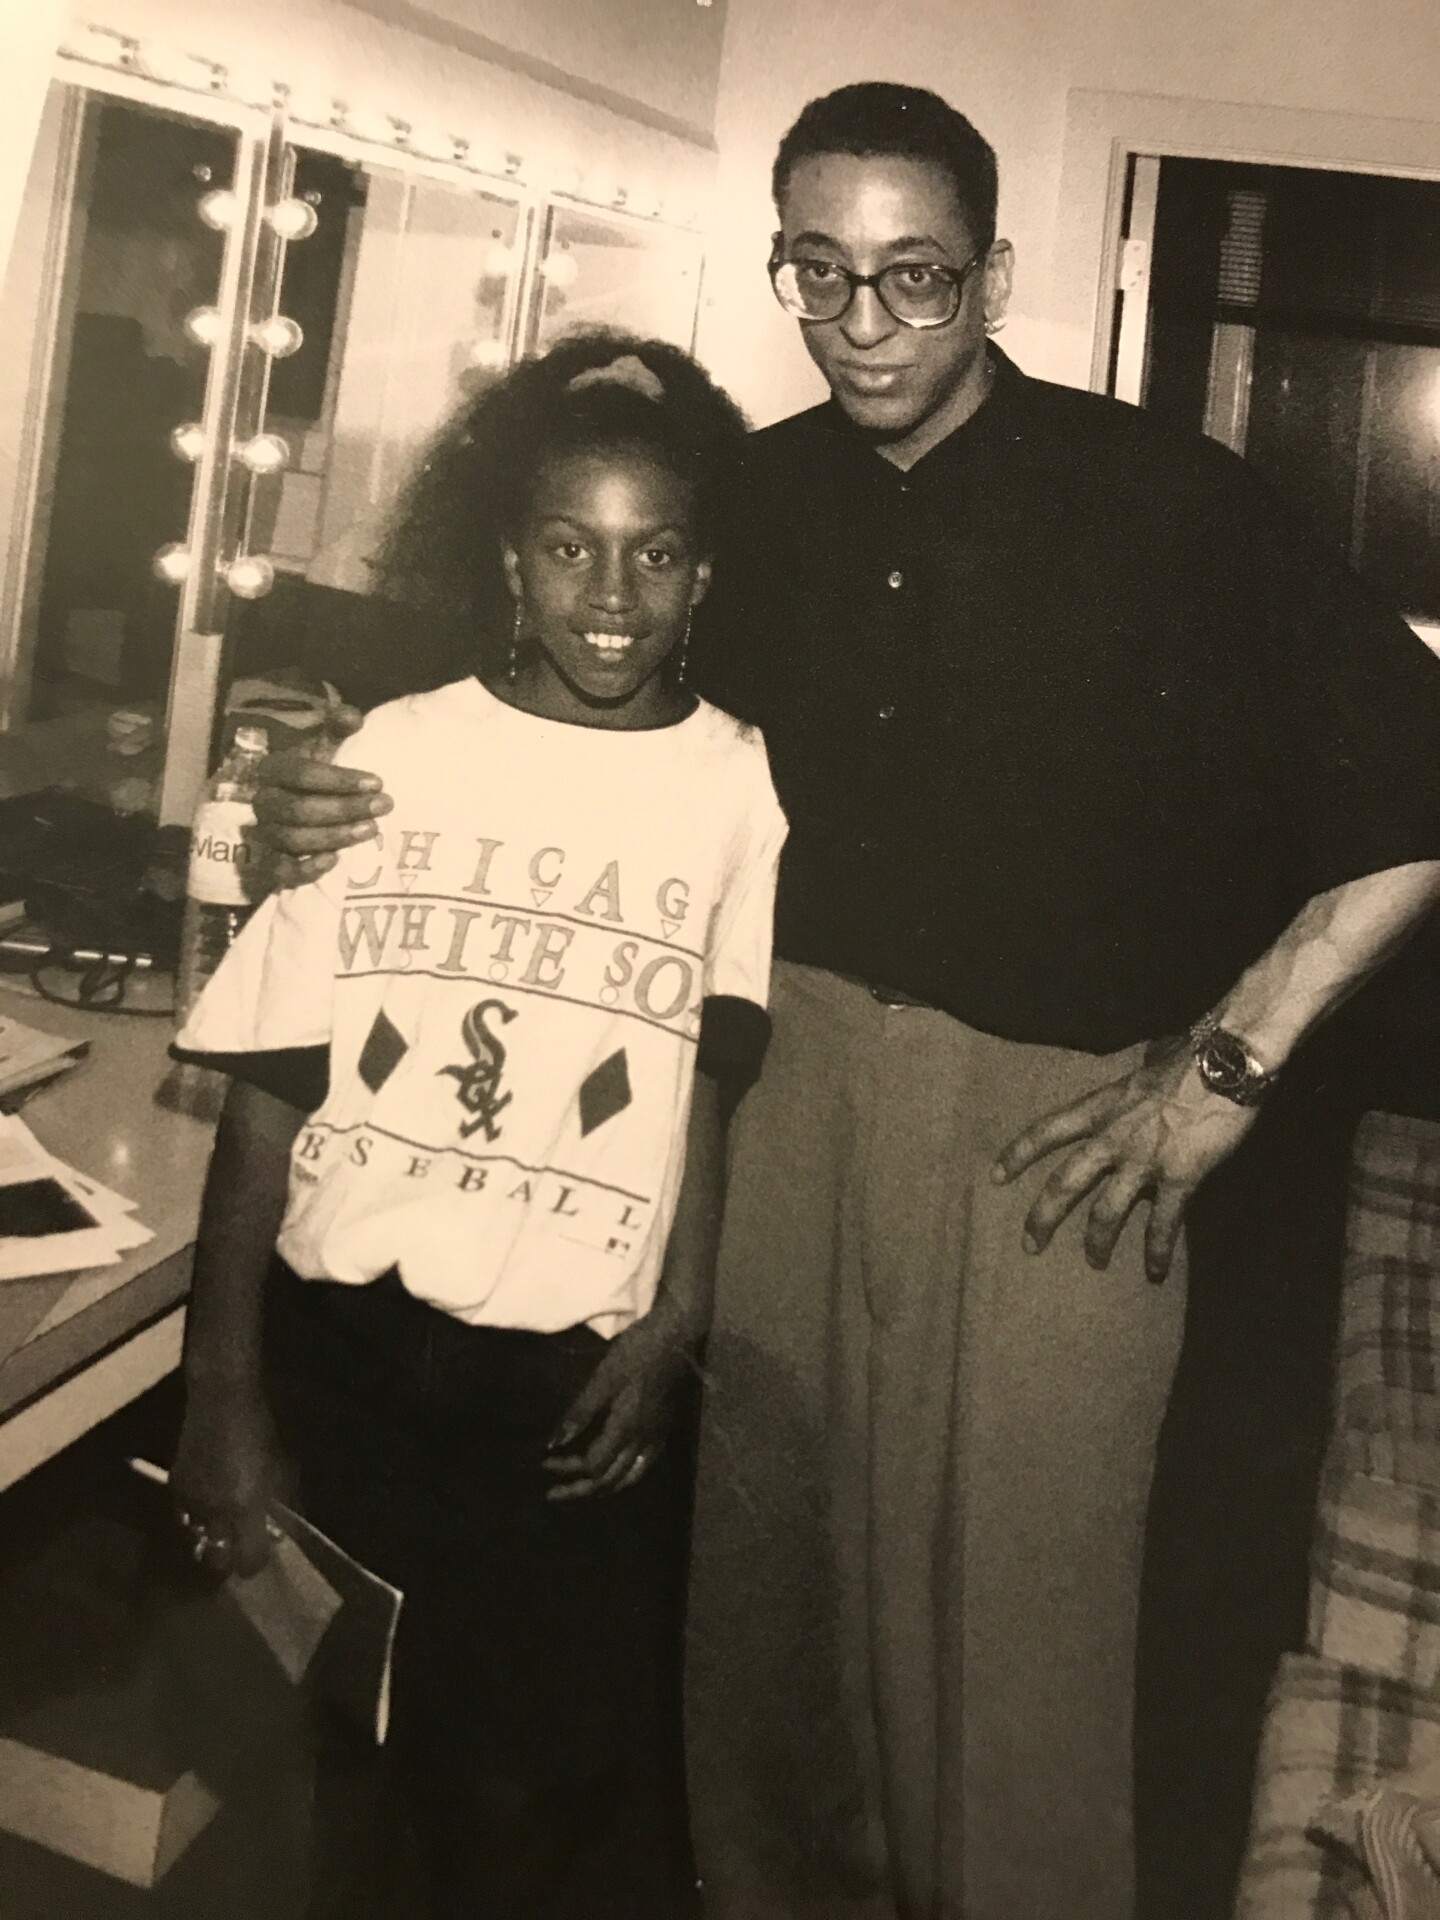 A young girl, dancer Chloe Arnold with Gregory Hines.